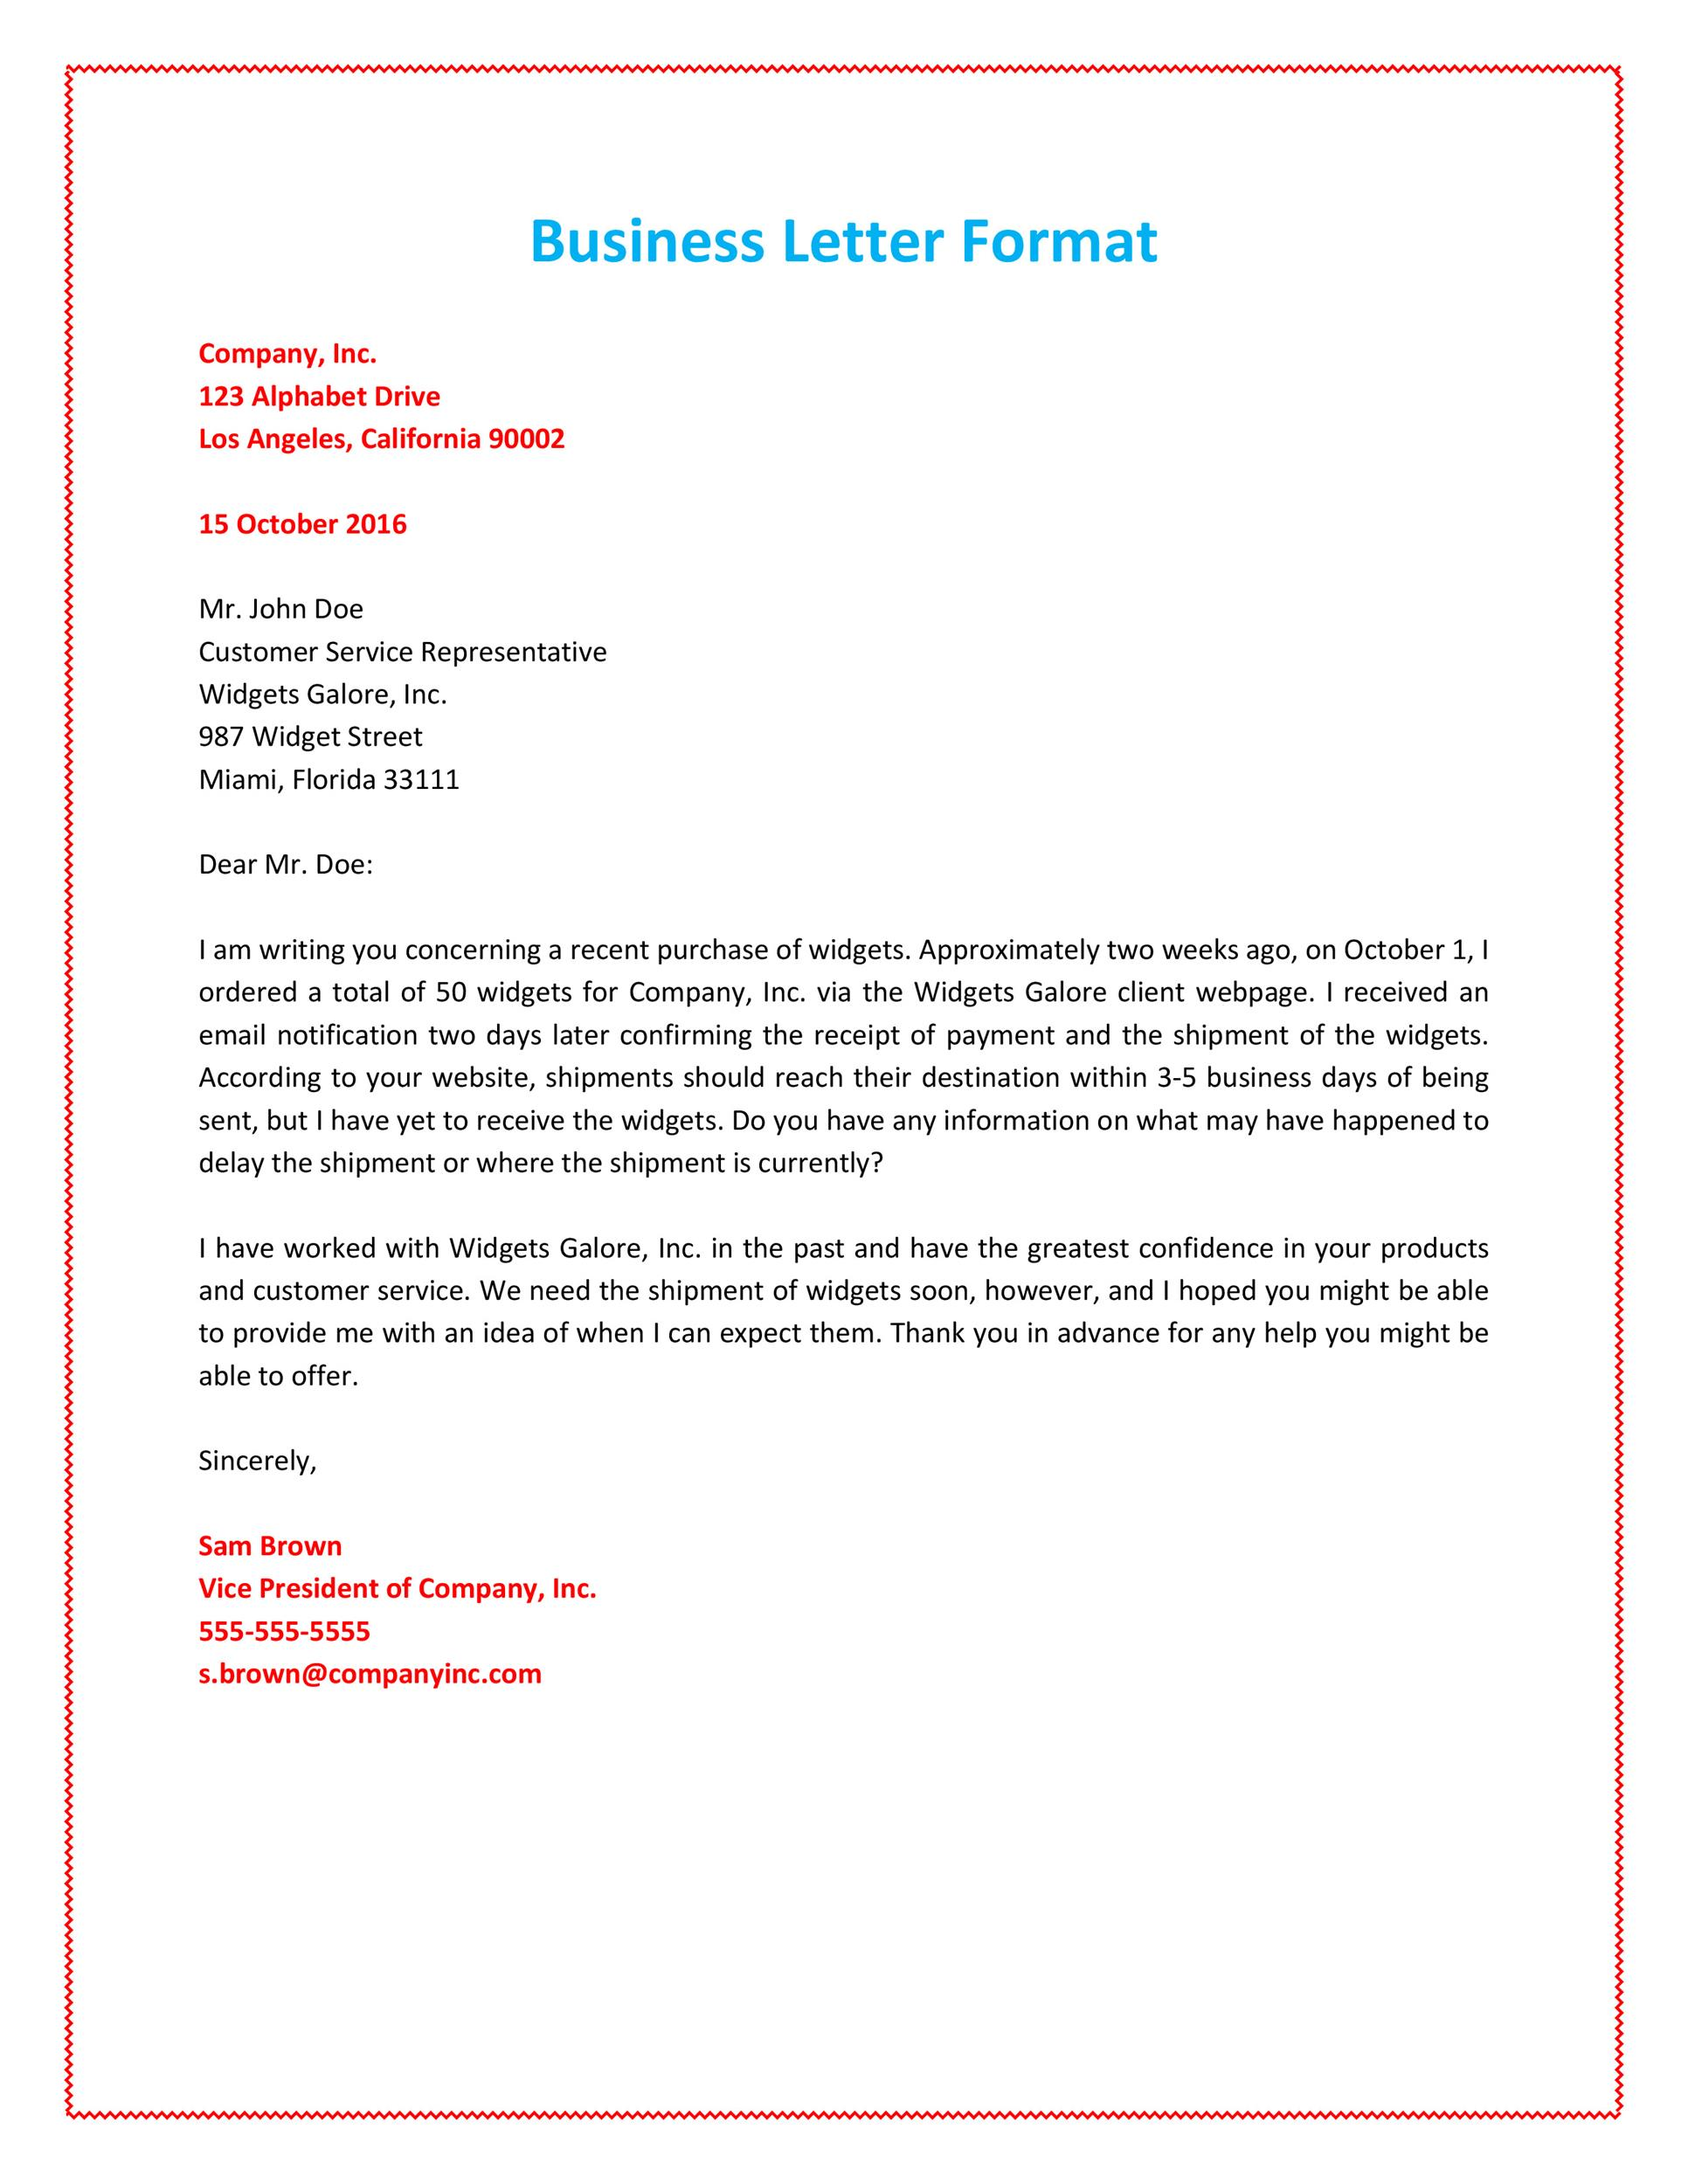 Bussiness letter format jcmanagement 35 formal business letter format templates examples template lab spiritdancerdesigns Choice Image